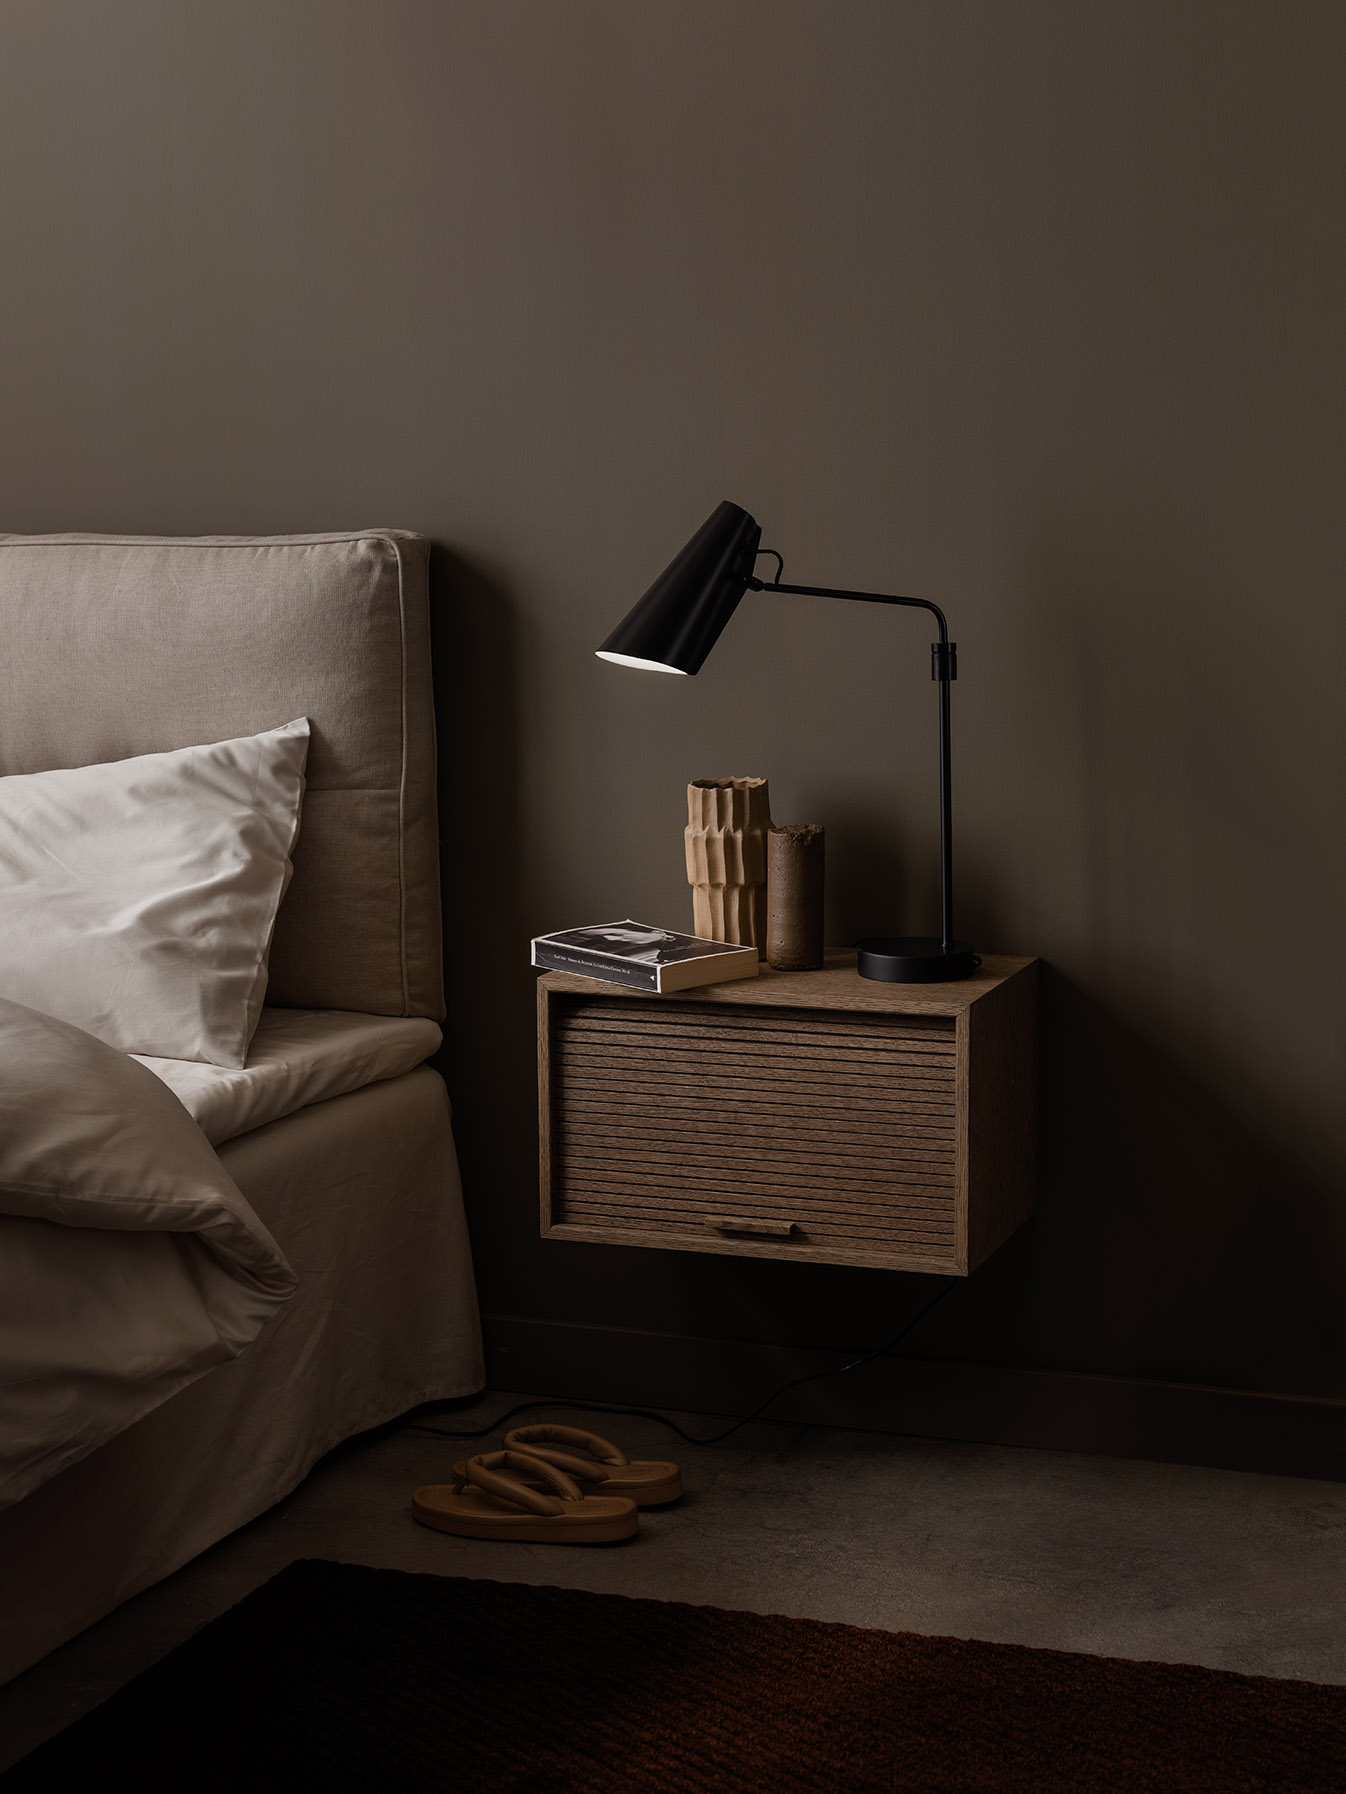 Birdy_table_lamp_swing_bedside_Hifive_Northern_Photo_Einar_Aslaksen_Low-res